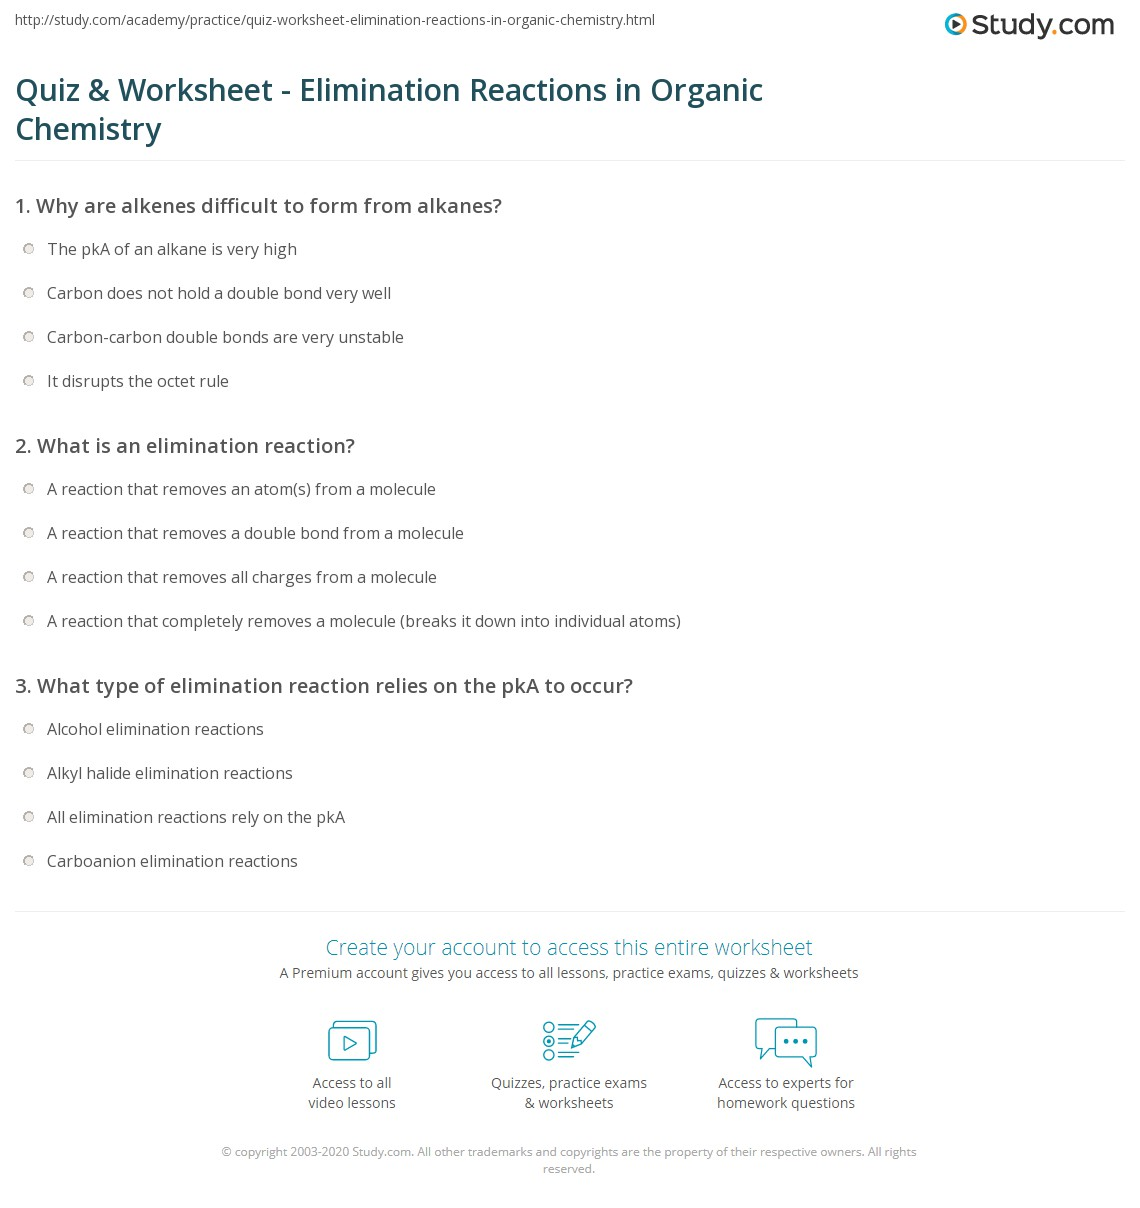 Worksheets Worksheets For Organic Chemistry Worksheet 1 Alkanes Answers quiz worksheet elimination reactions in organic chemistry print worksheet